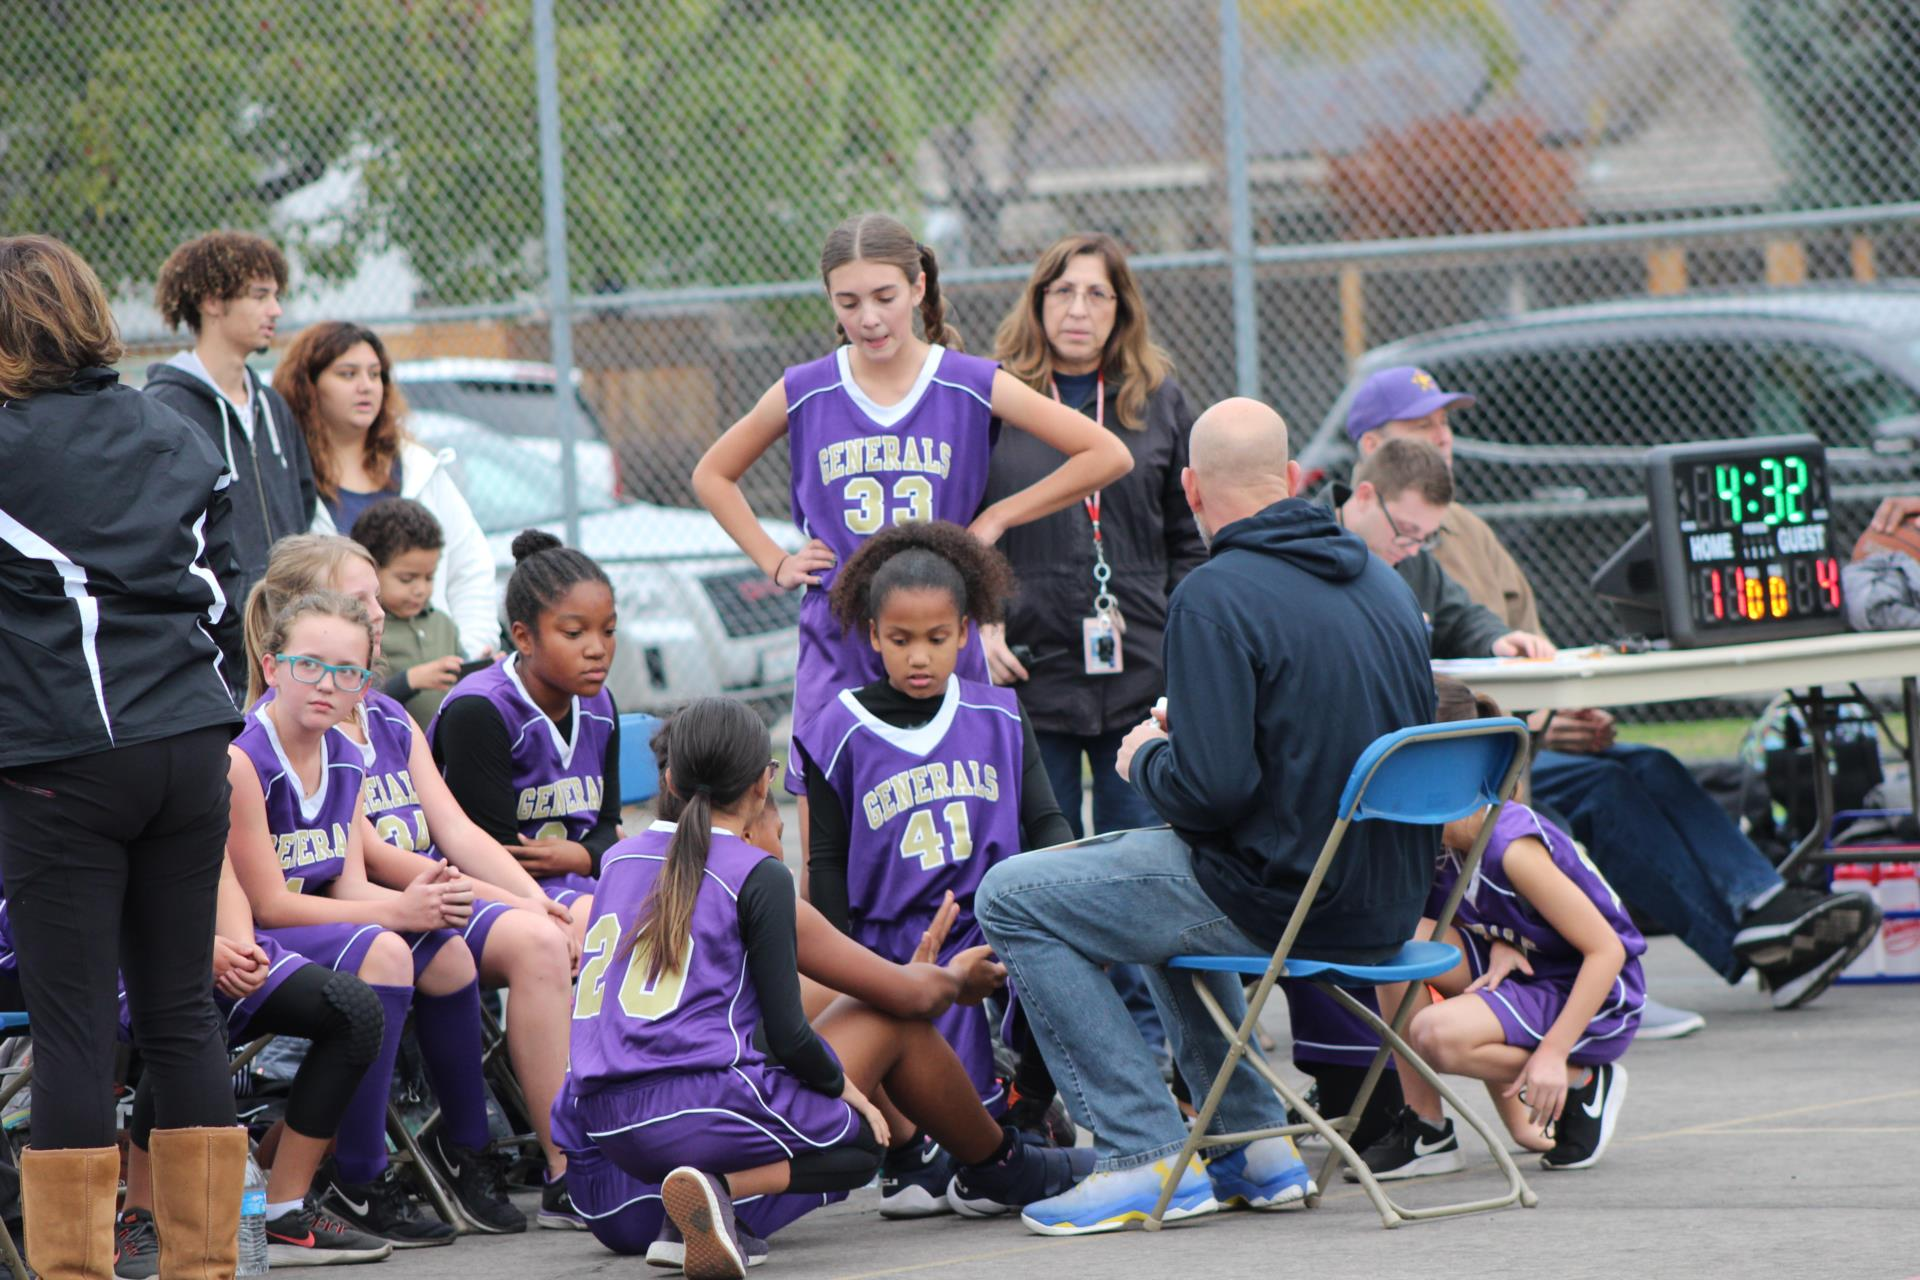 Girls gathered around coach listening.